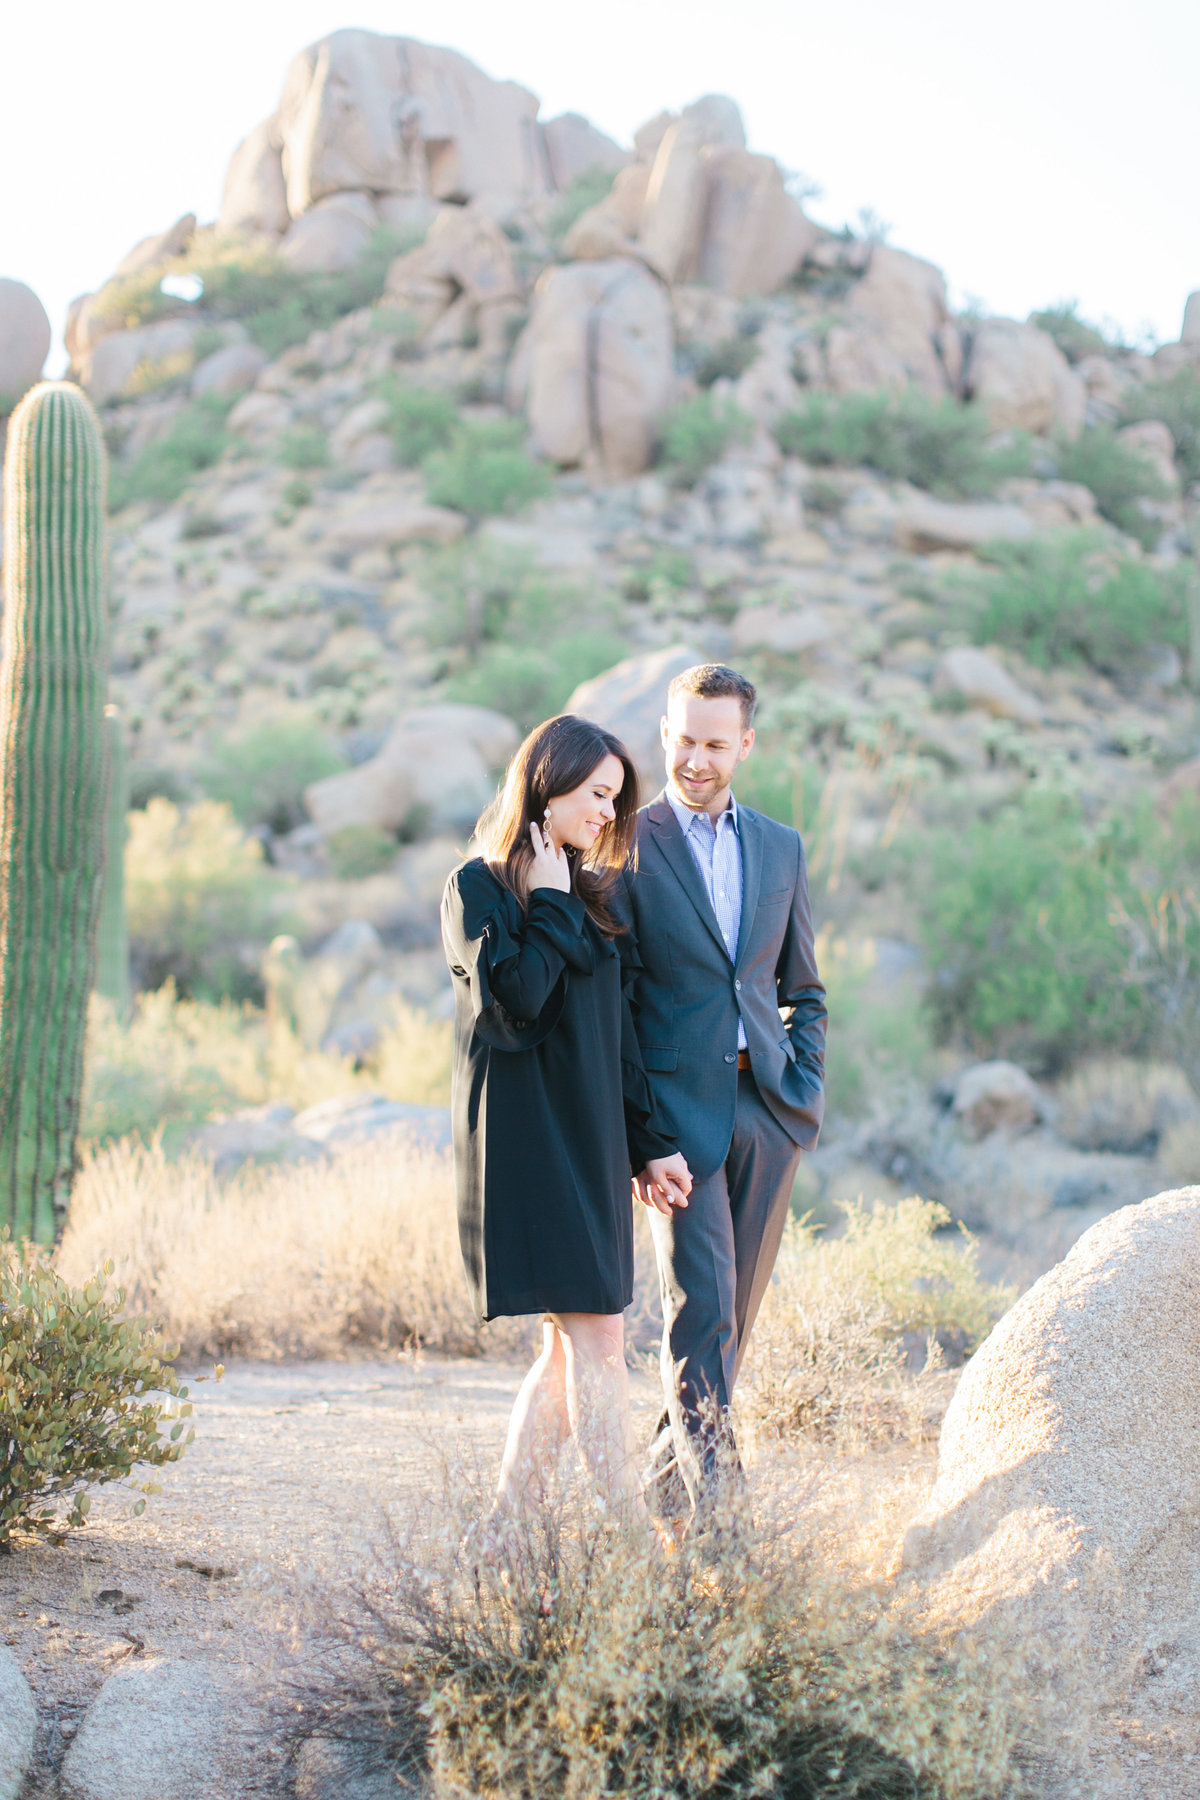 SellersEngagementWEBSITE-5